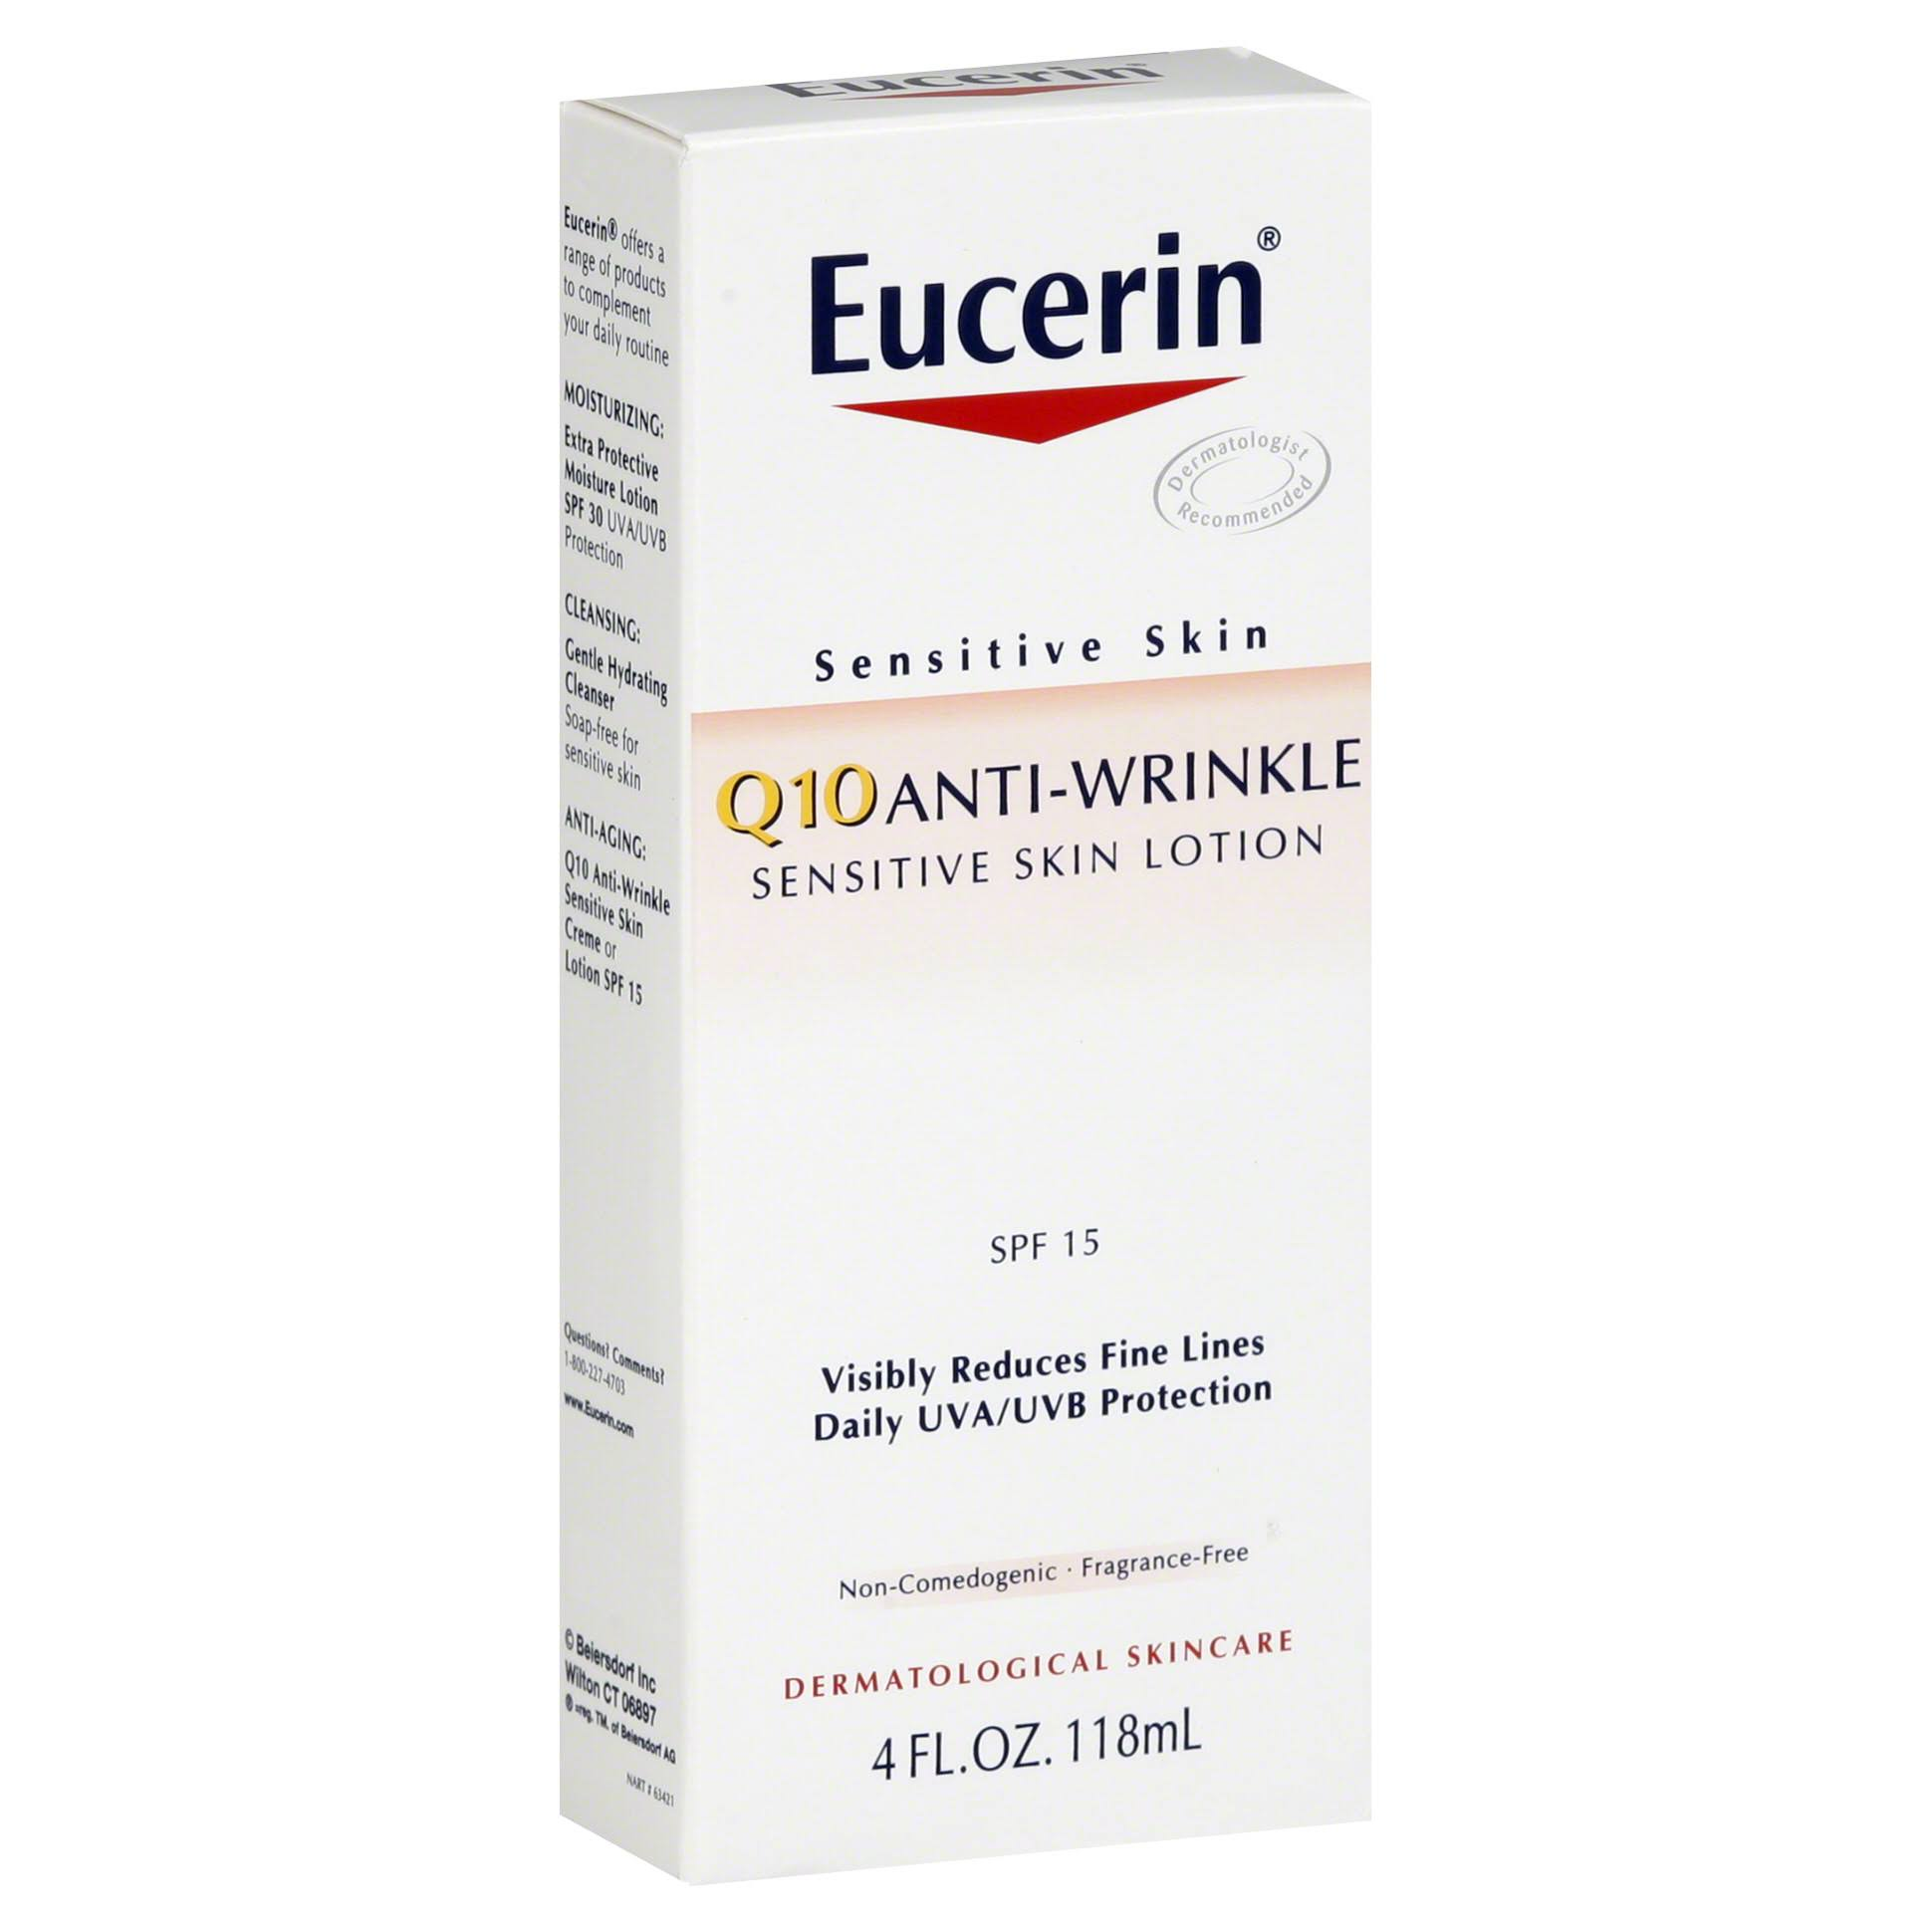 Eucerin Q10 Anti-Wrinkle Sensitive Skin Lotion - SPF15, 4oz